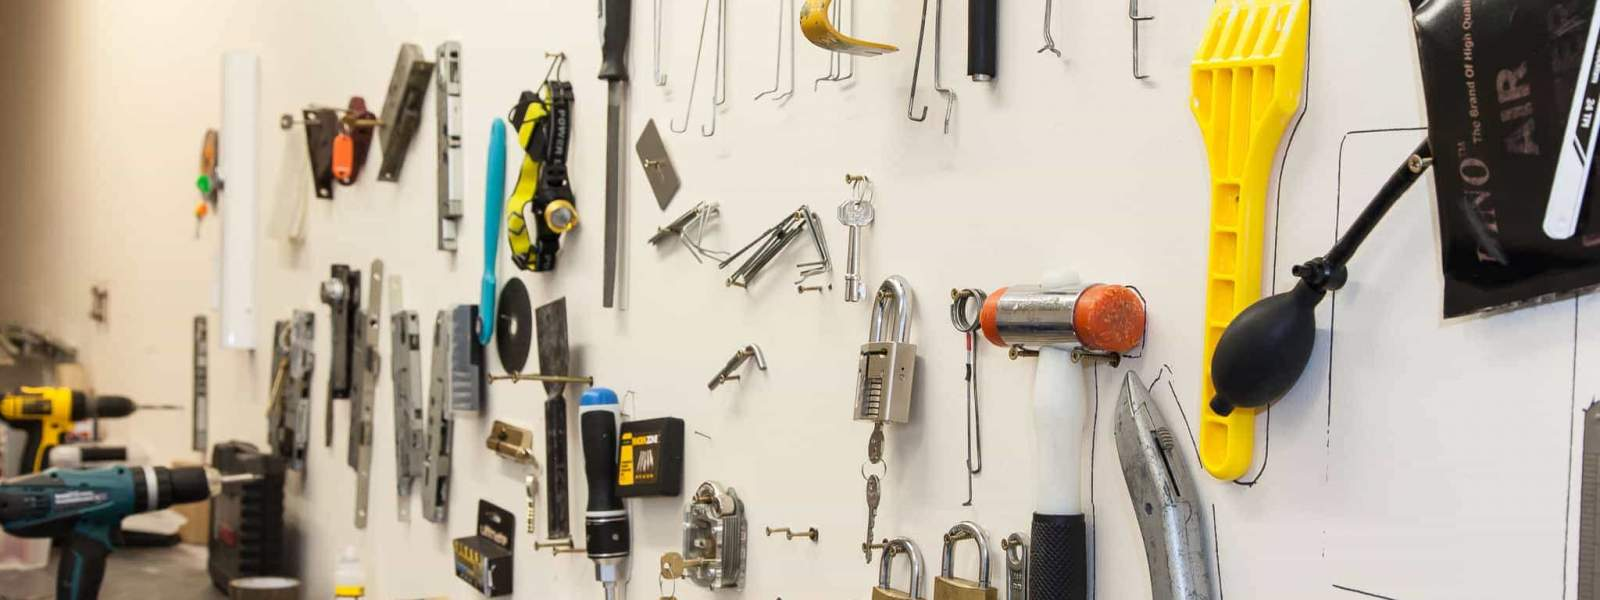 Locksmith Tools On Wall 2